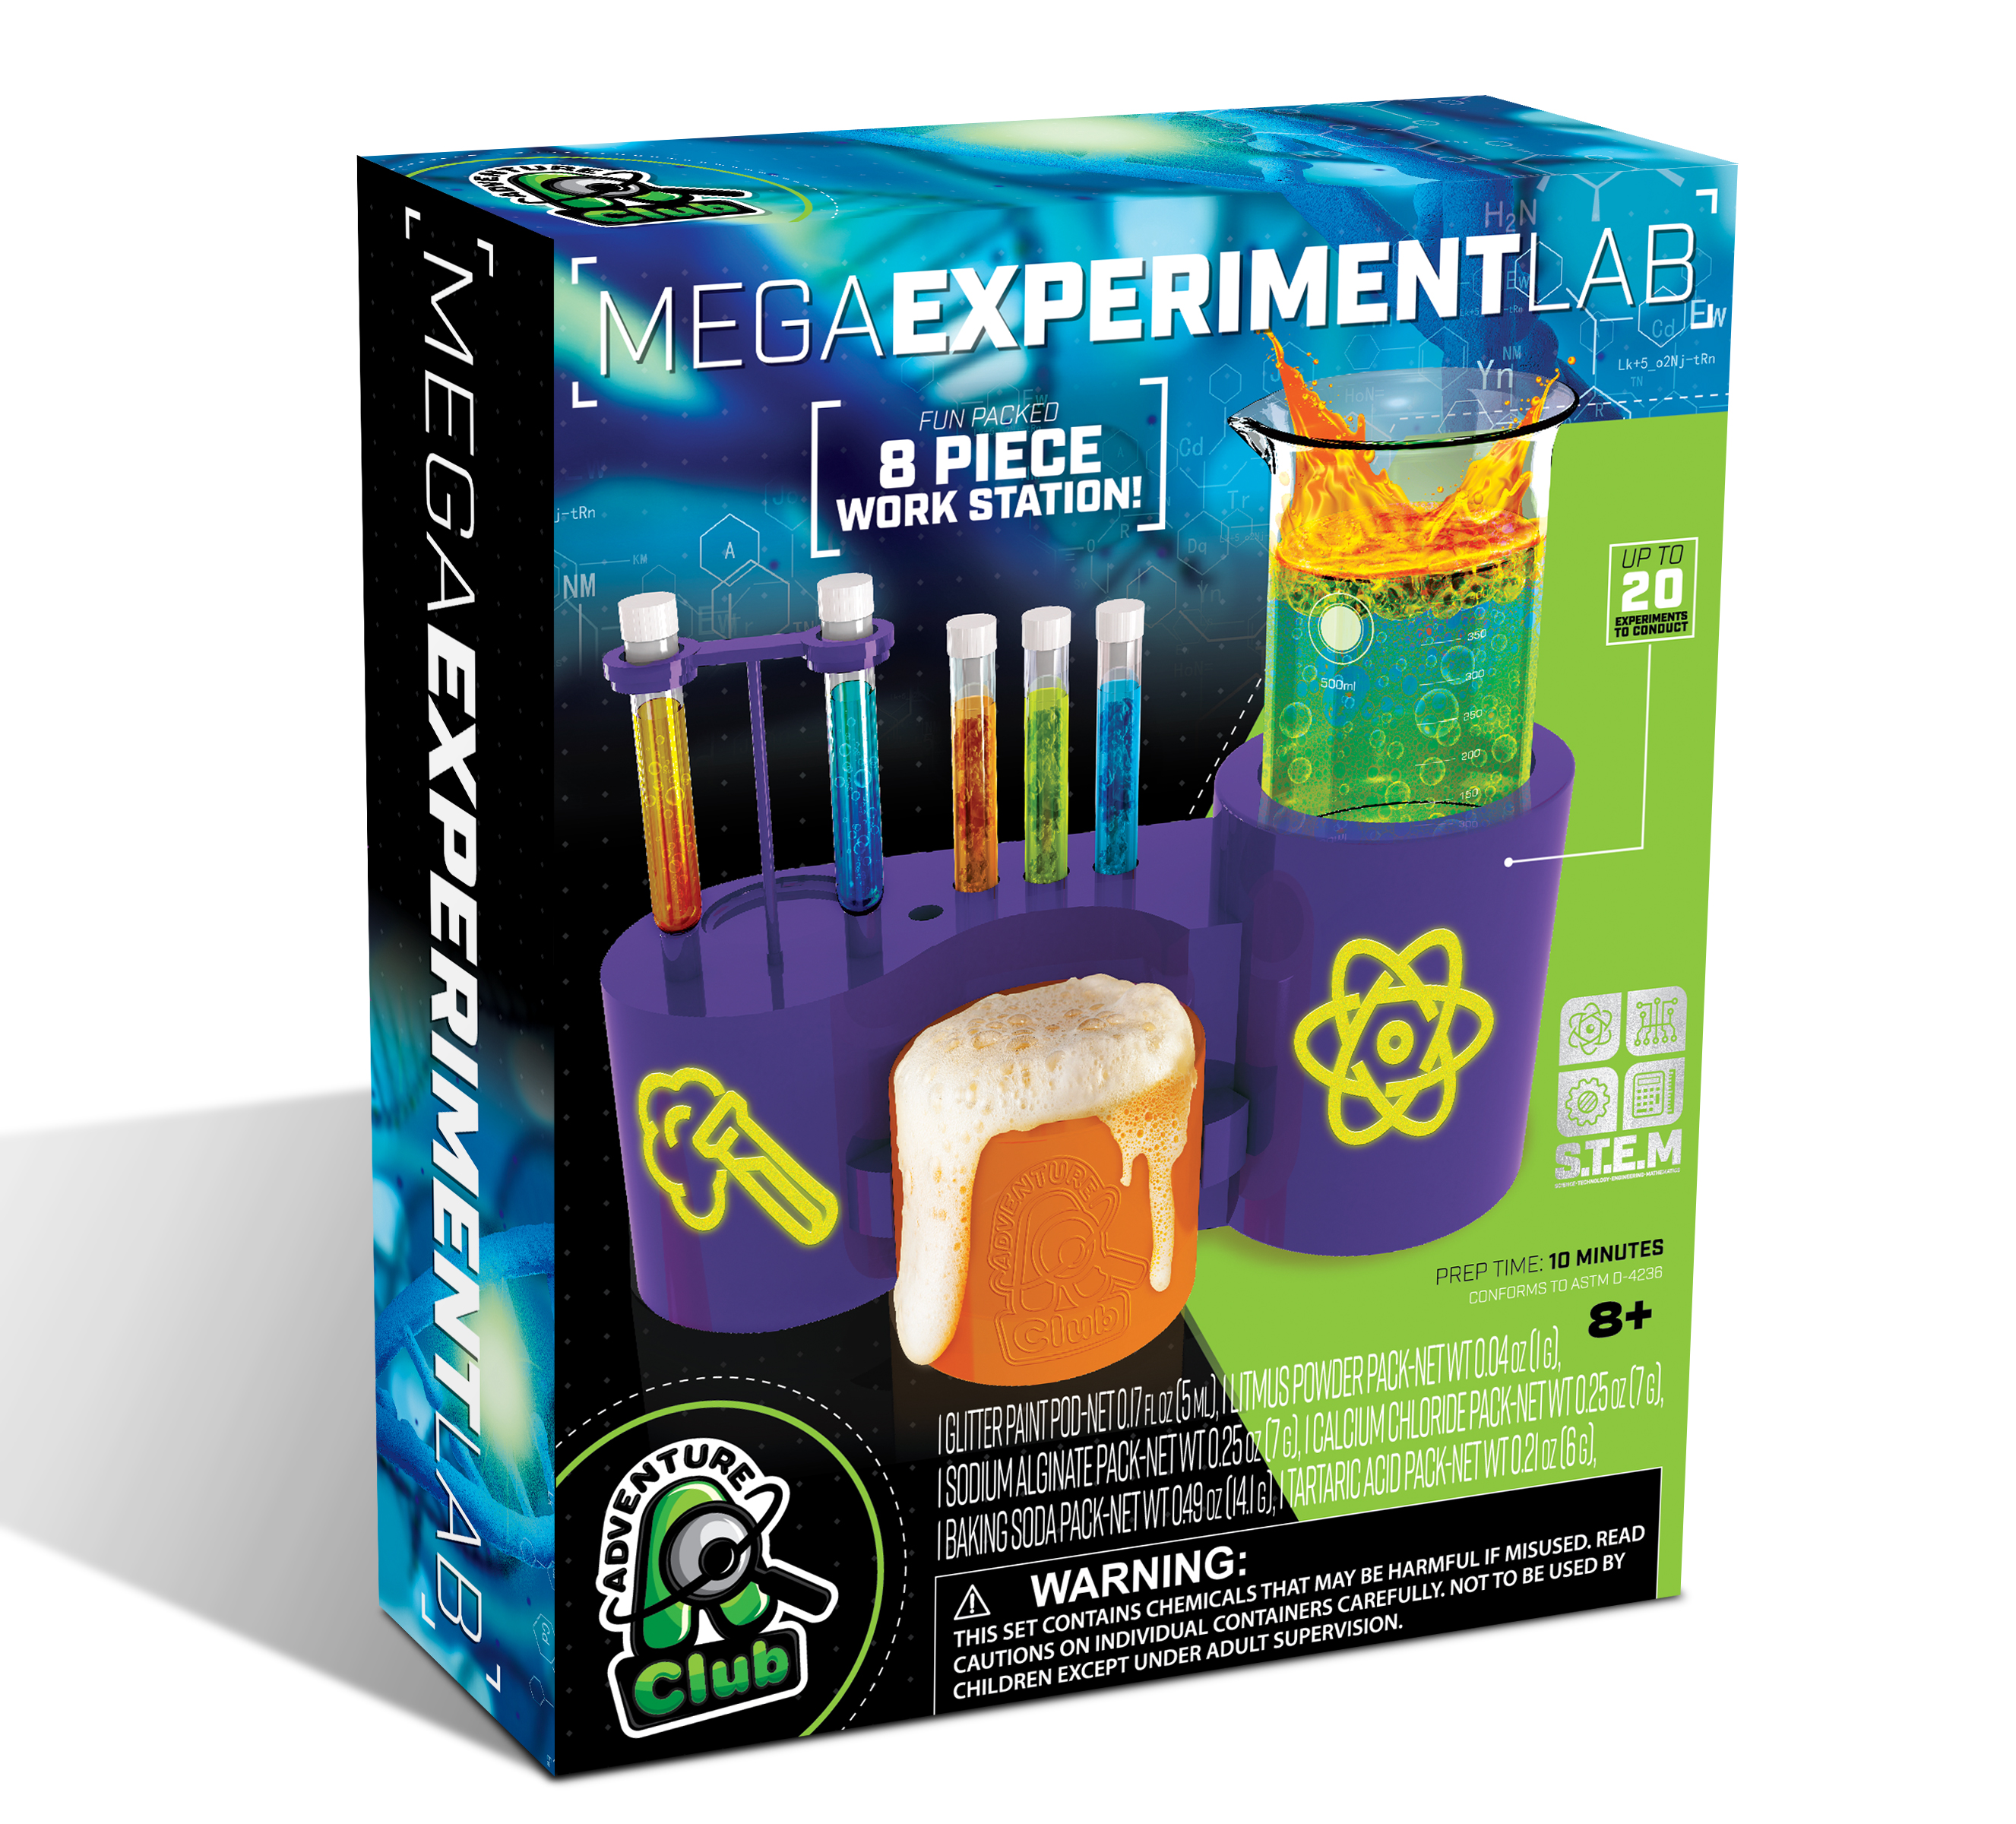 MEGA EXPERIMENT LAB